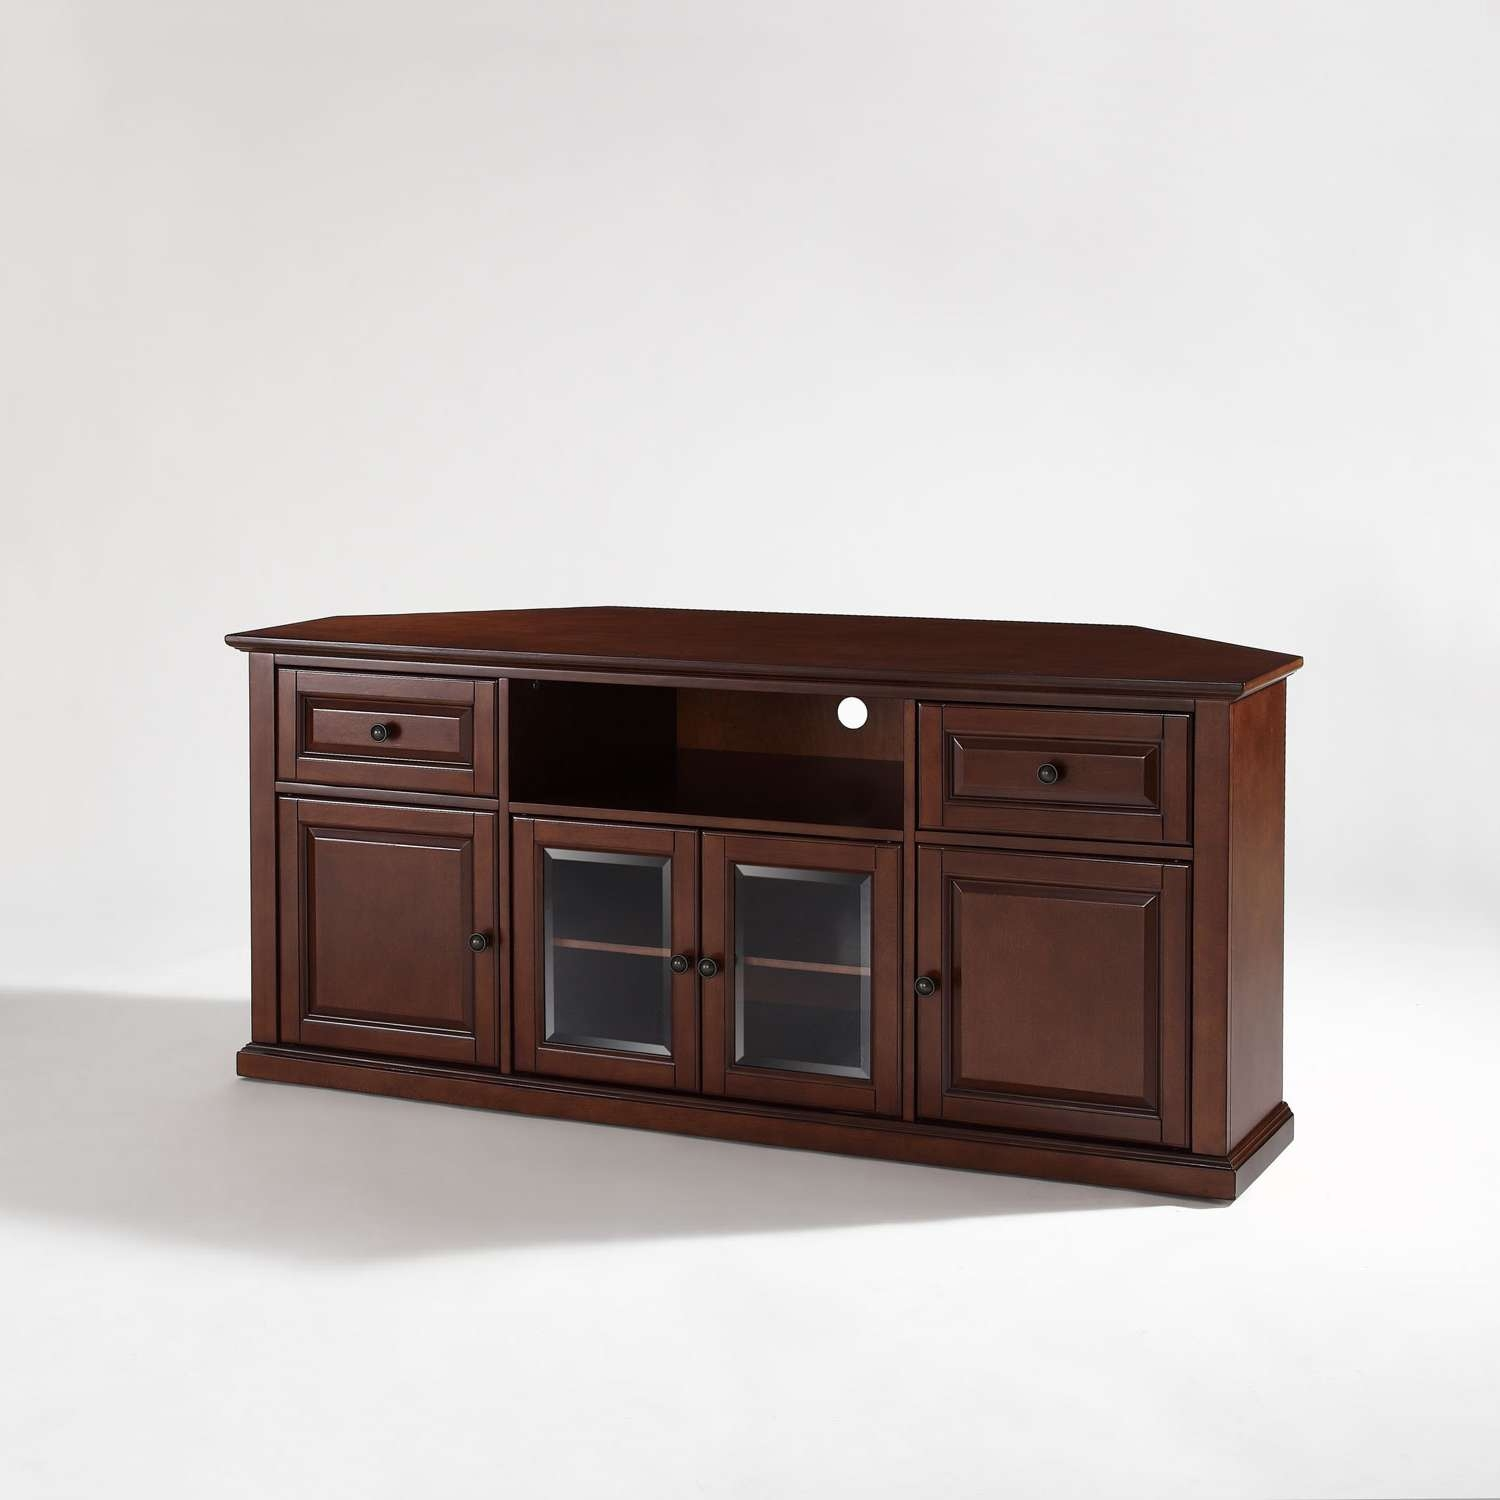 60 Inch Corner Tv Stand In Vintage Mahogany Crosley Furniture With Tv Stands Corner Units (View 1 of 15)